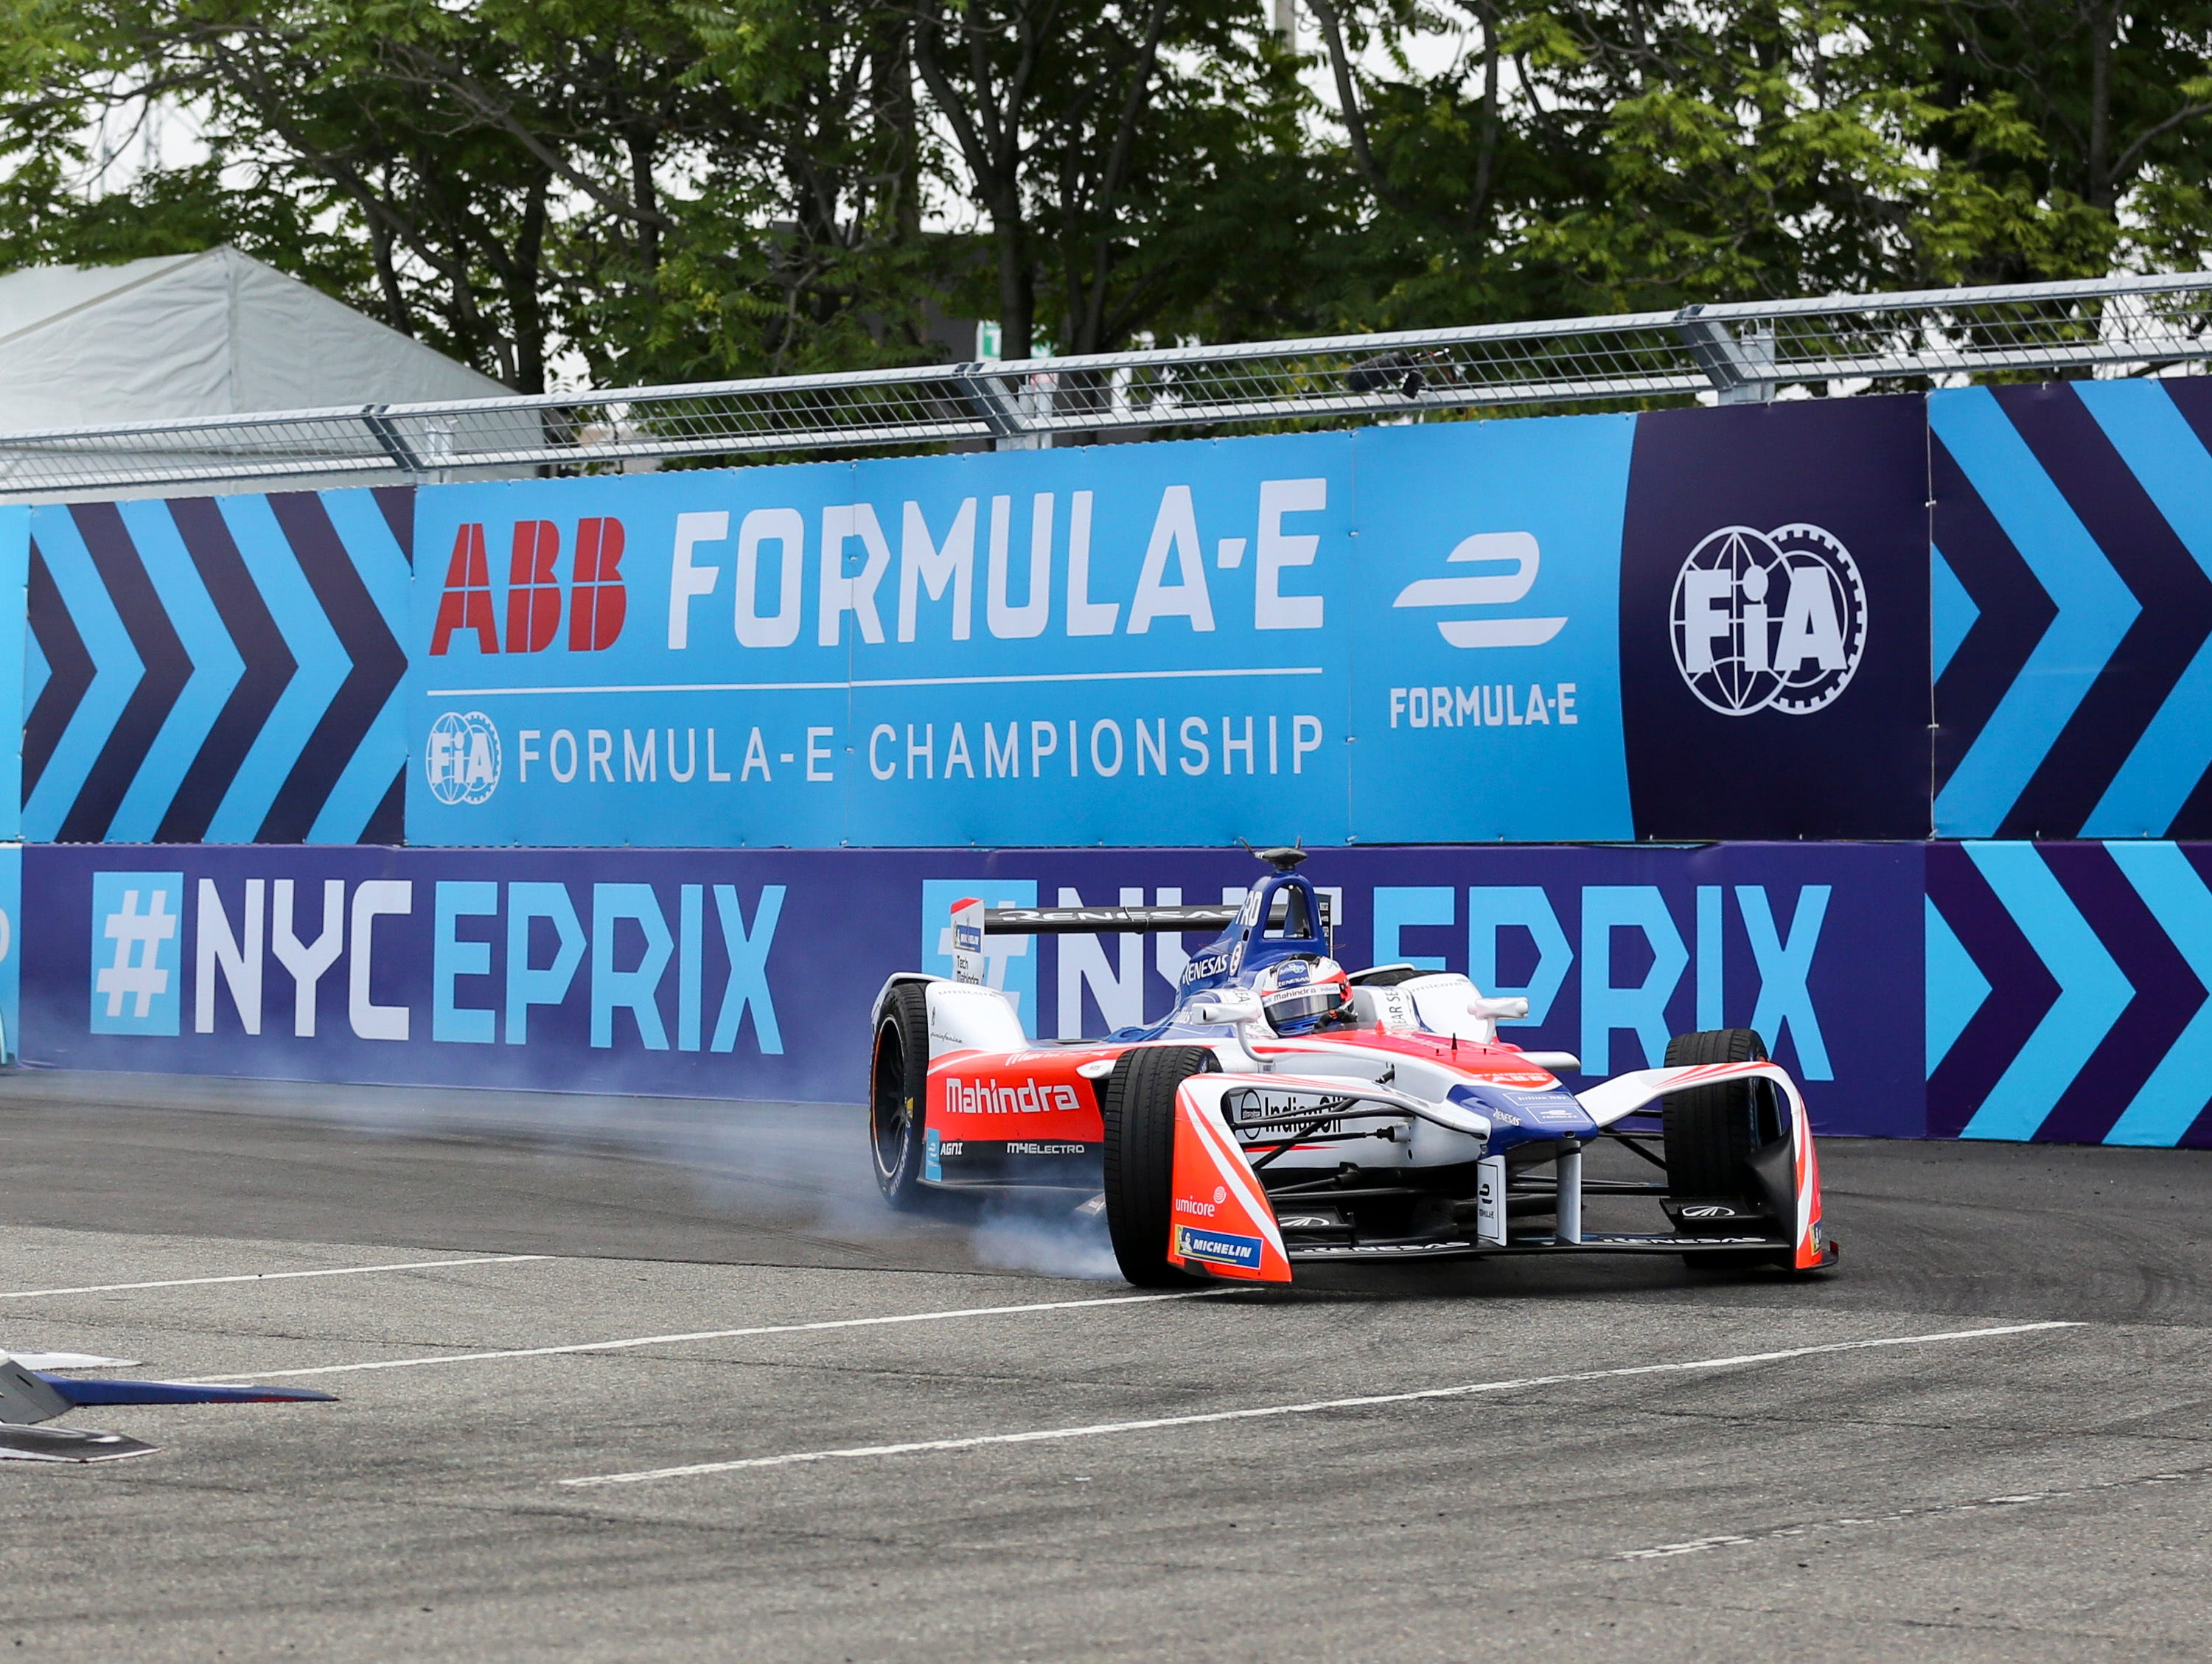 Mahindra Racing's Felix Rosenqvist takes a hairpin turn during the second of two auto races in the Formula E championship on Sunday, July 15, 2018, in Brooklyn, New York.